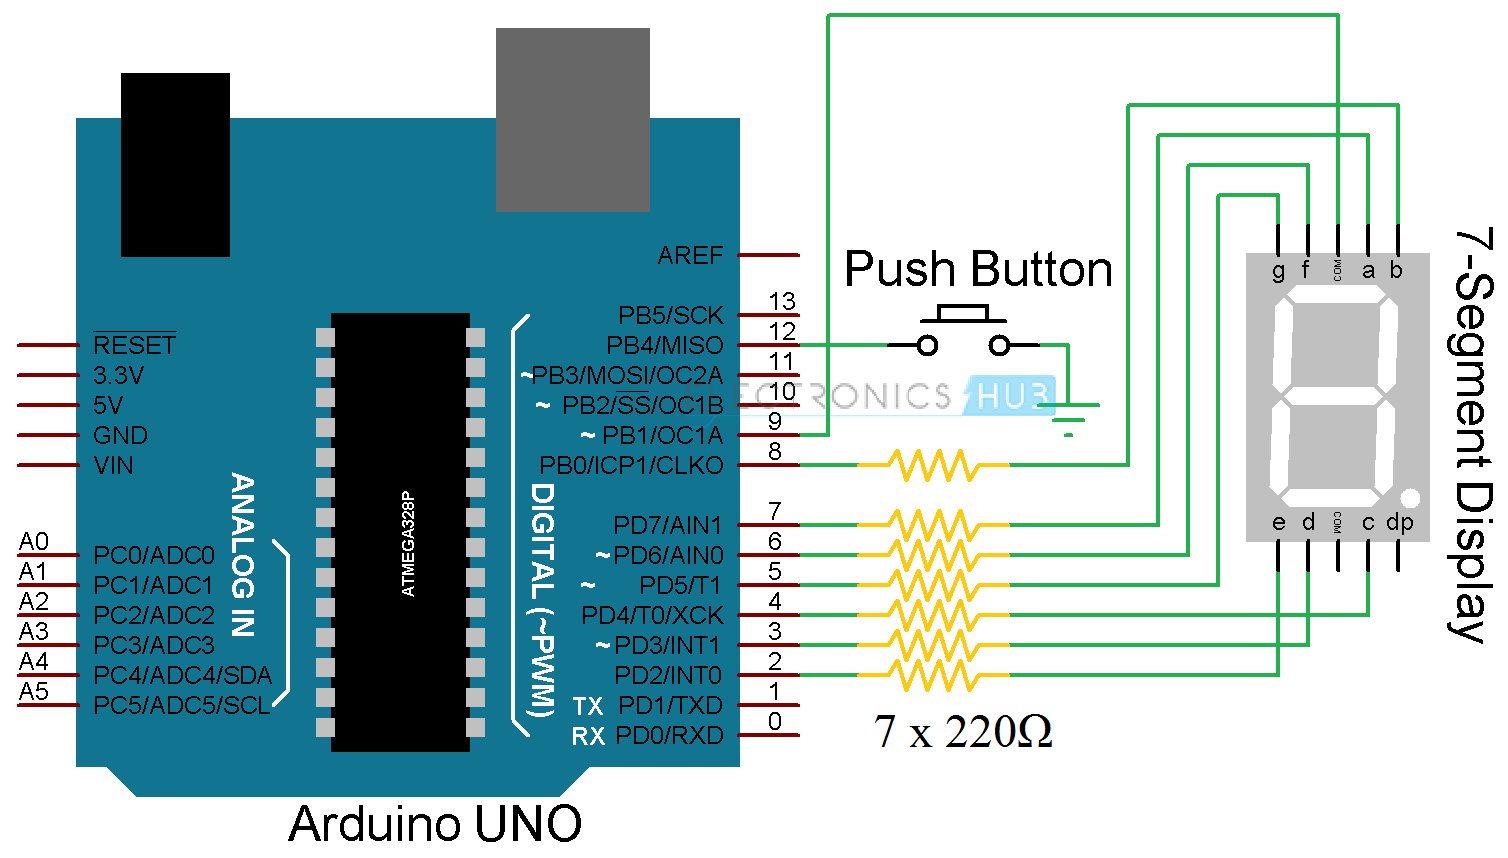 pin 7 arduino diagram of a flowering plant with label segment display interface circuit rolling dice